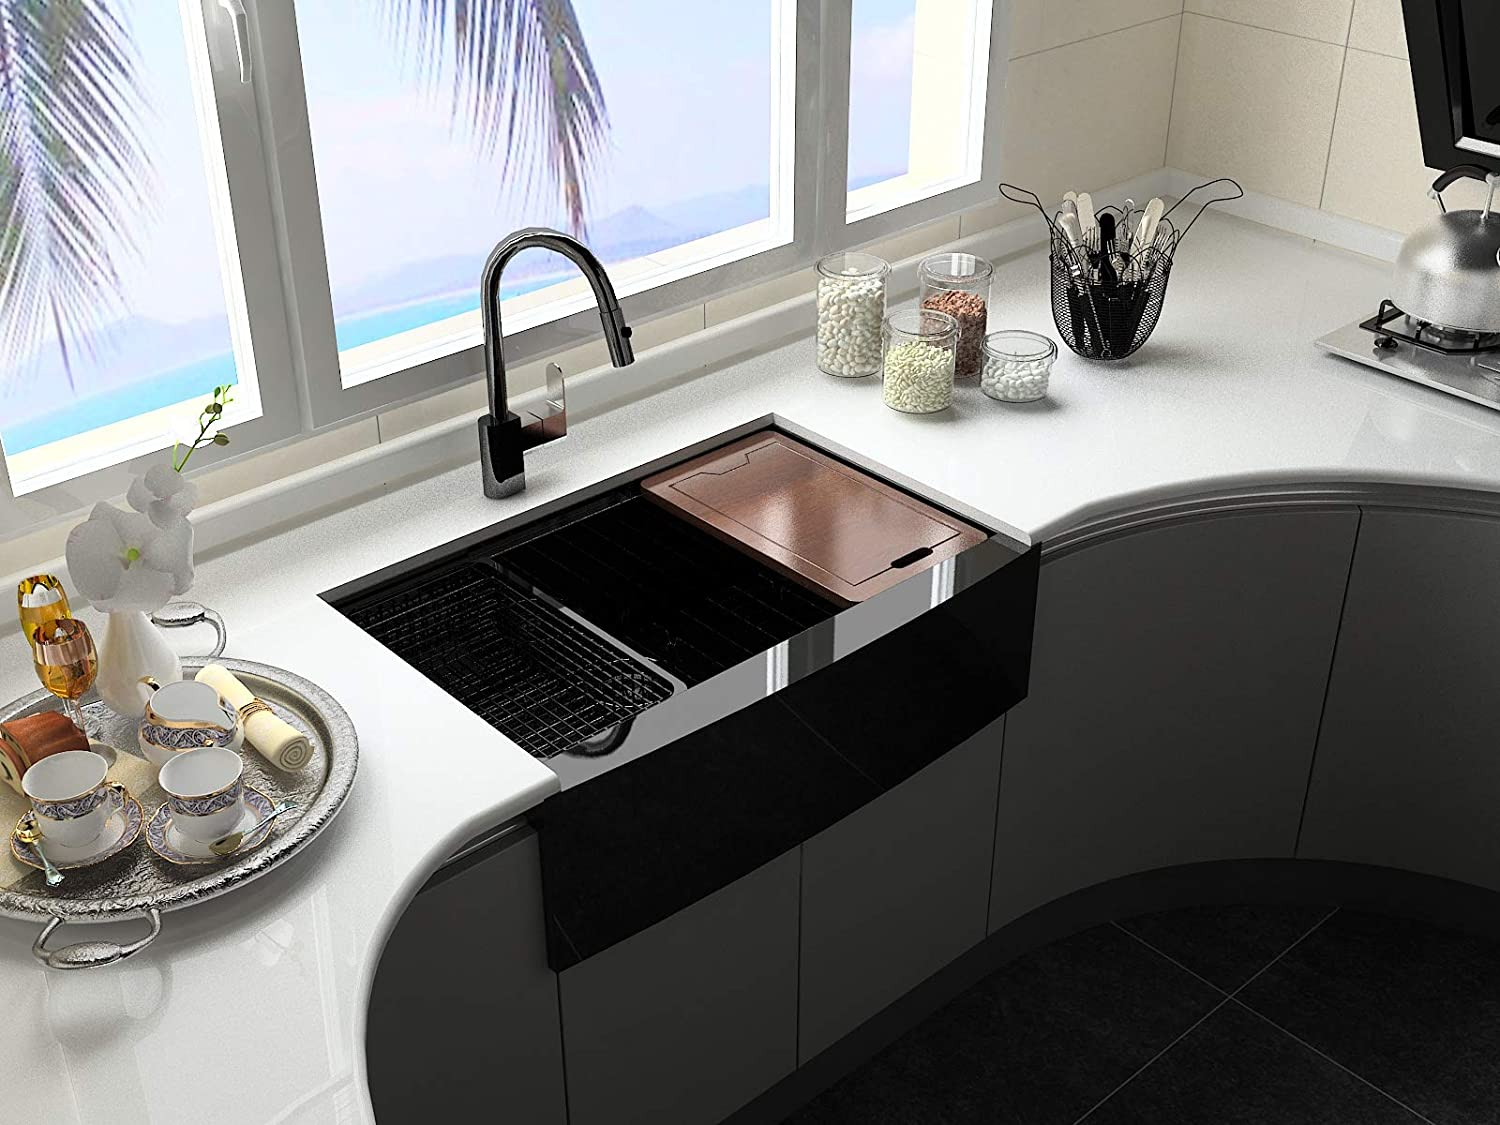 Doirteal 30 inch Black Farmhouse Sink Workstation Undermount 16 Gauge Gunmetal Black Stainless Steel Apron Front Farmhouse Kitchen Sink,10 Deep Single Bowl with Accessories Kit,Self-cleaning BL21S